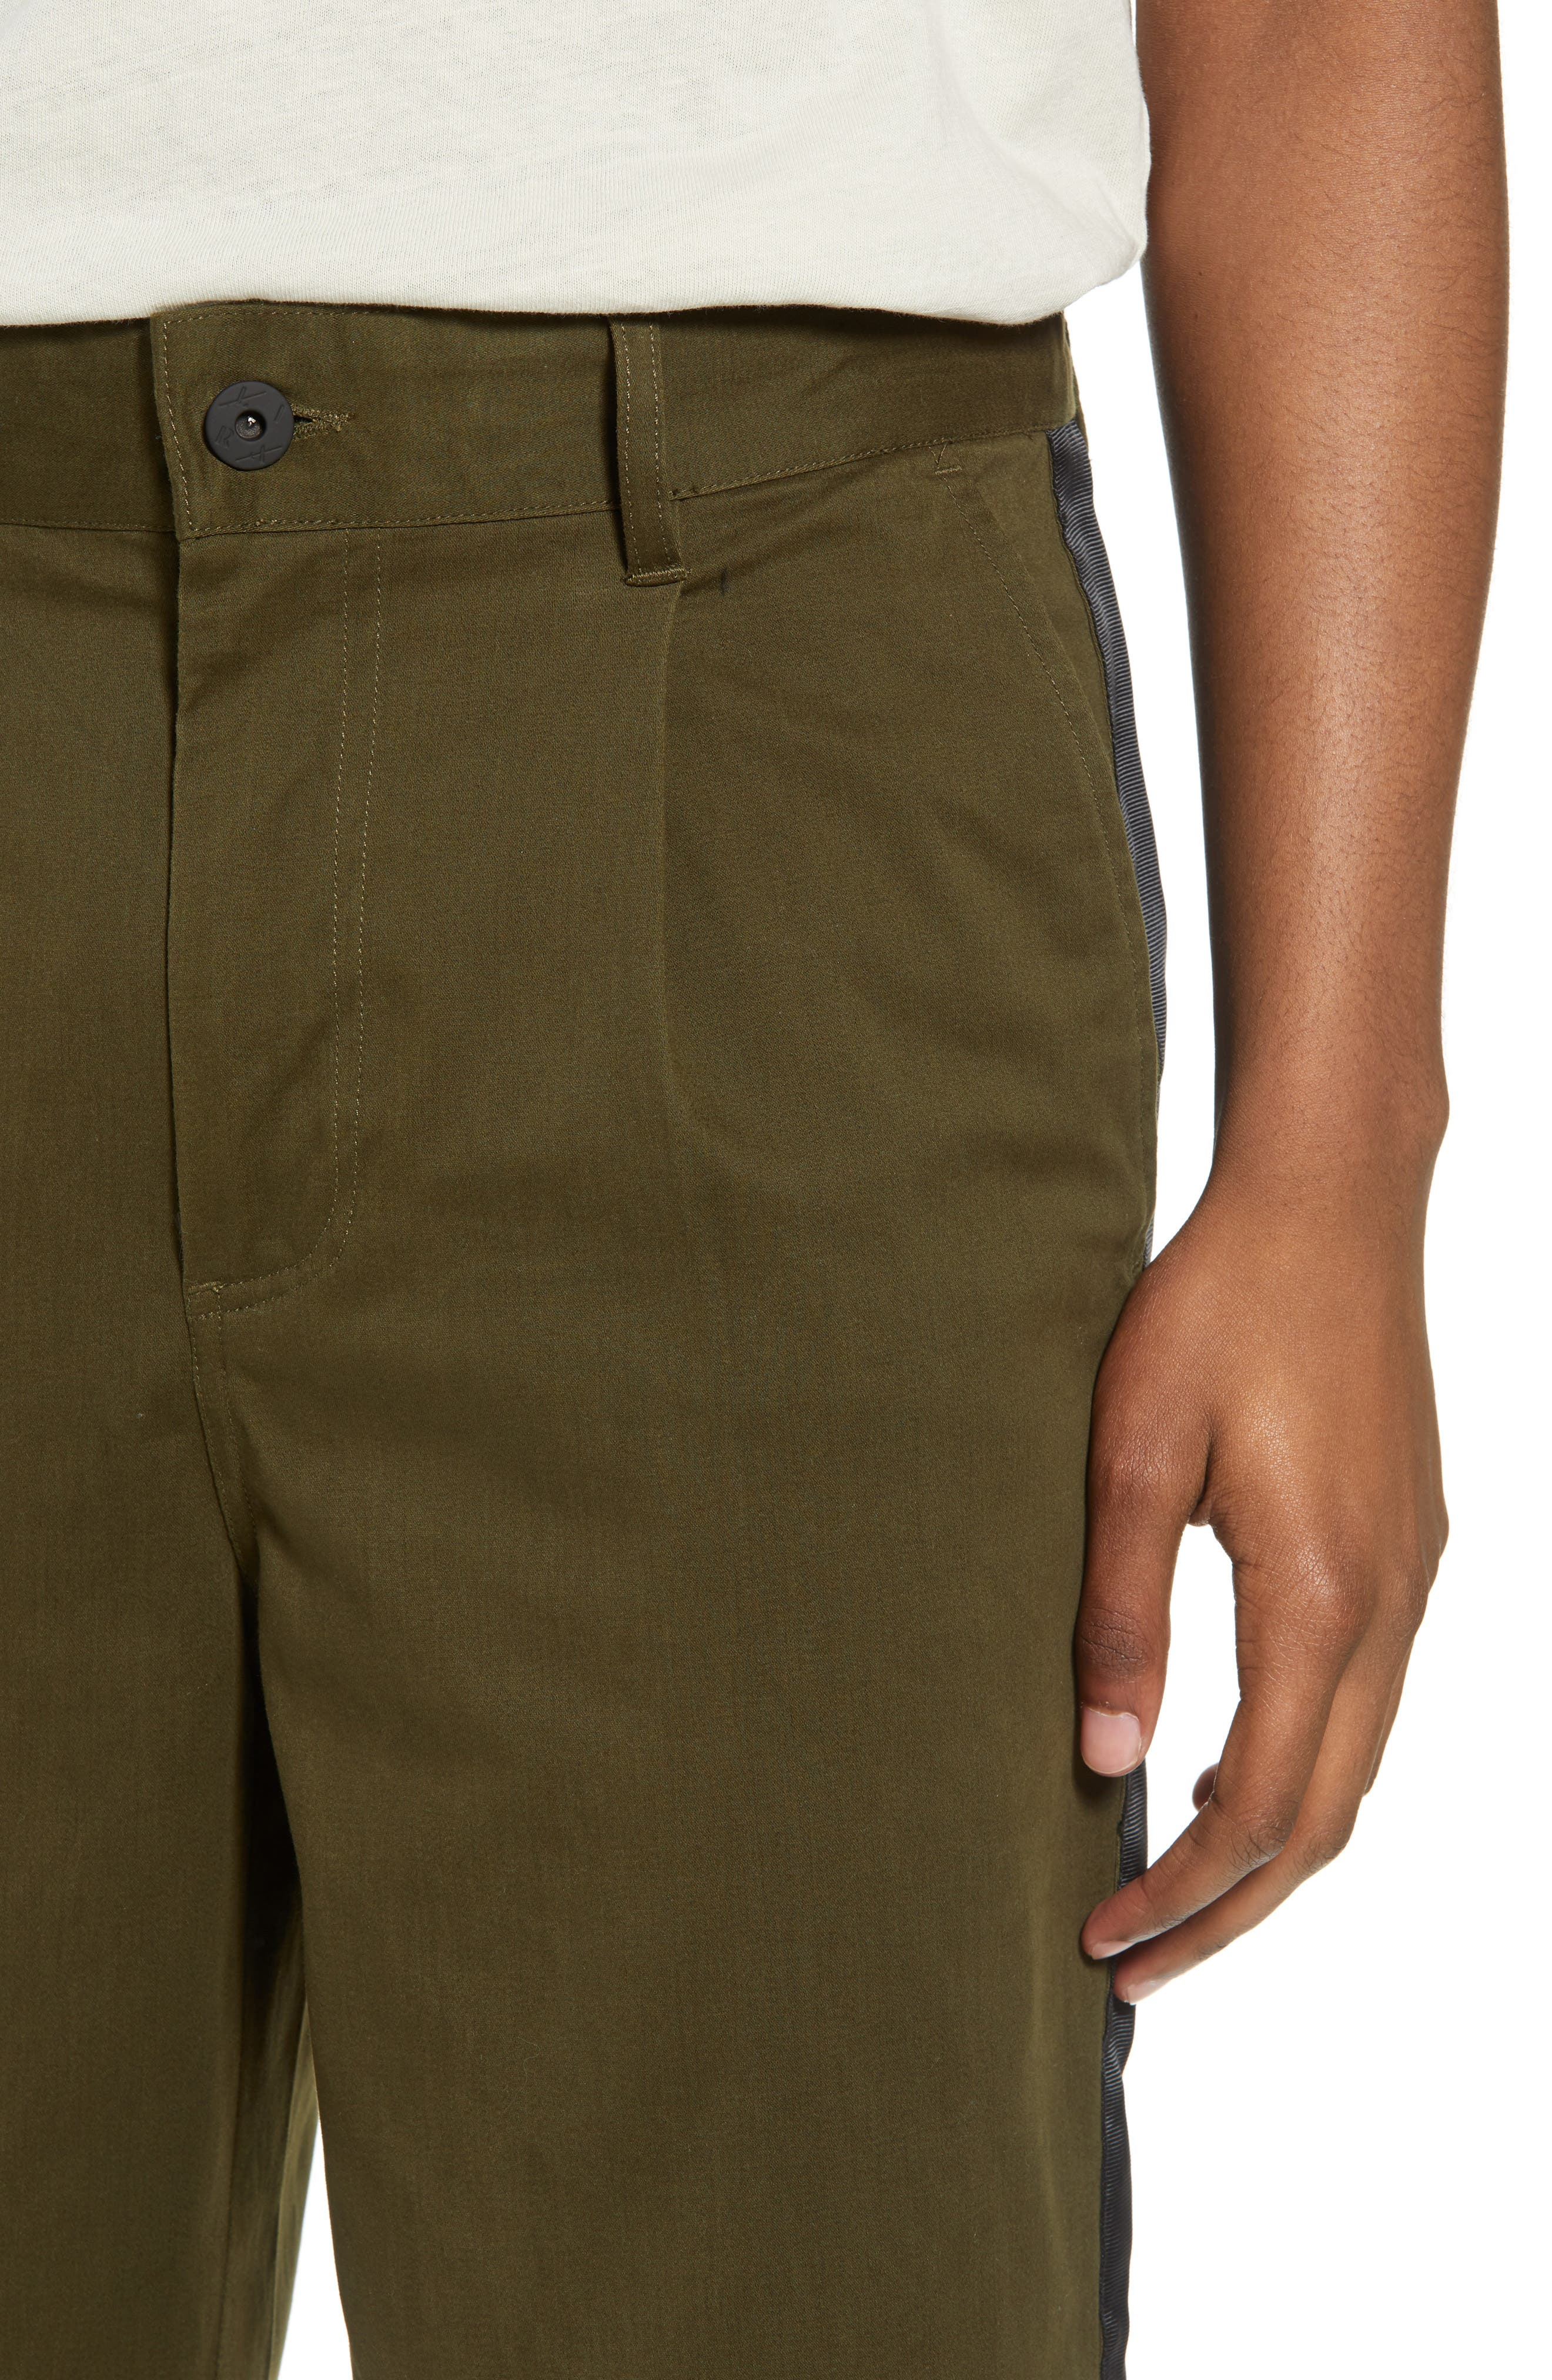 Lincoln Relaxed Fit Pants,                             Alternate thumbnail 4, color,                             Olive